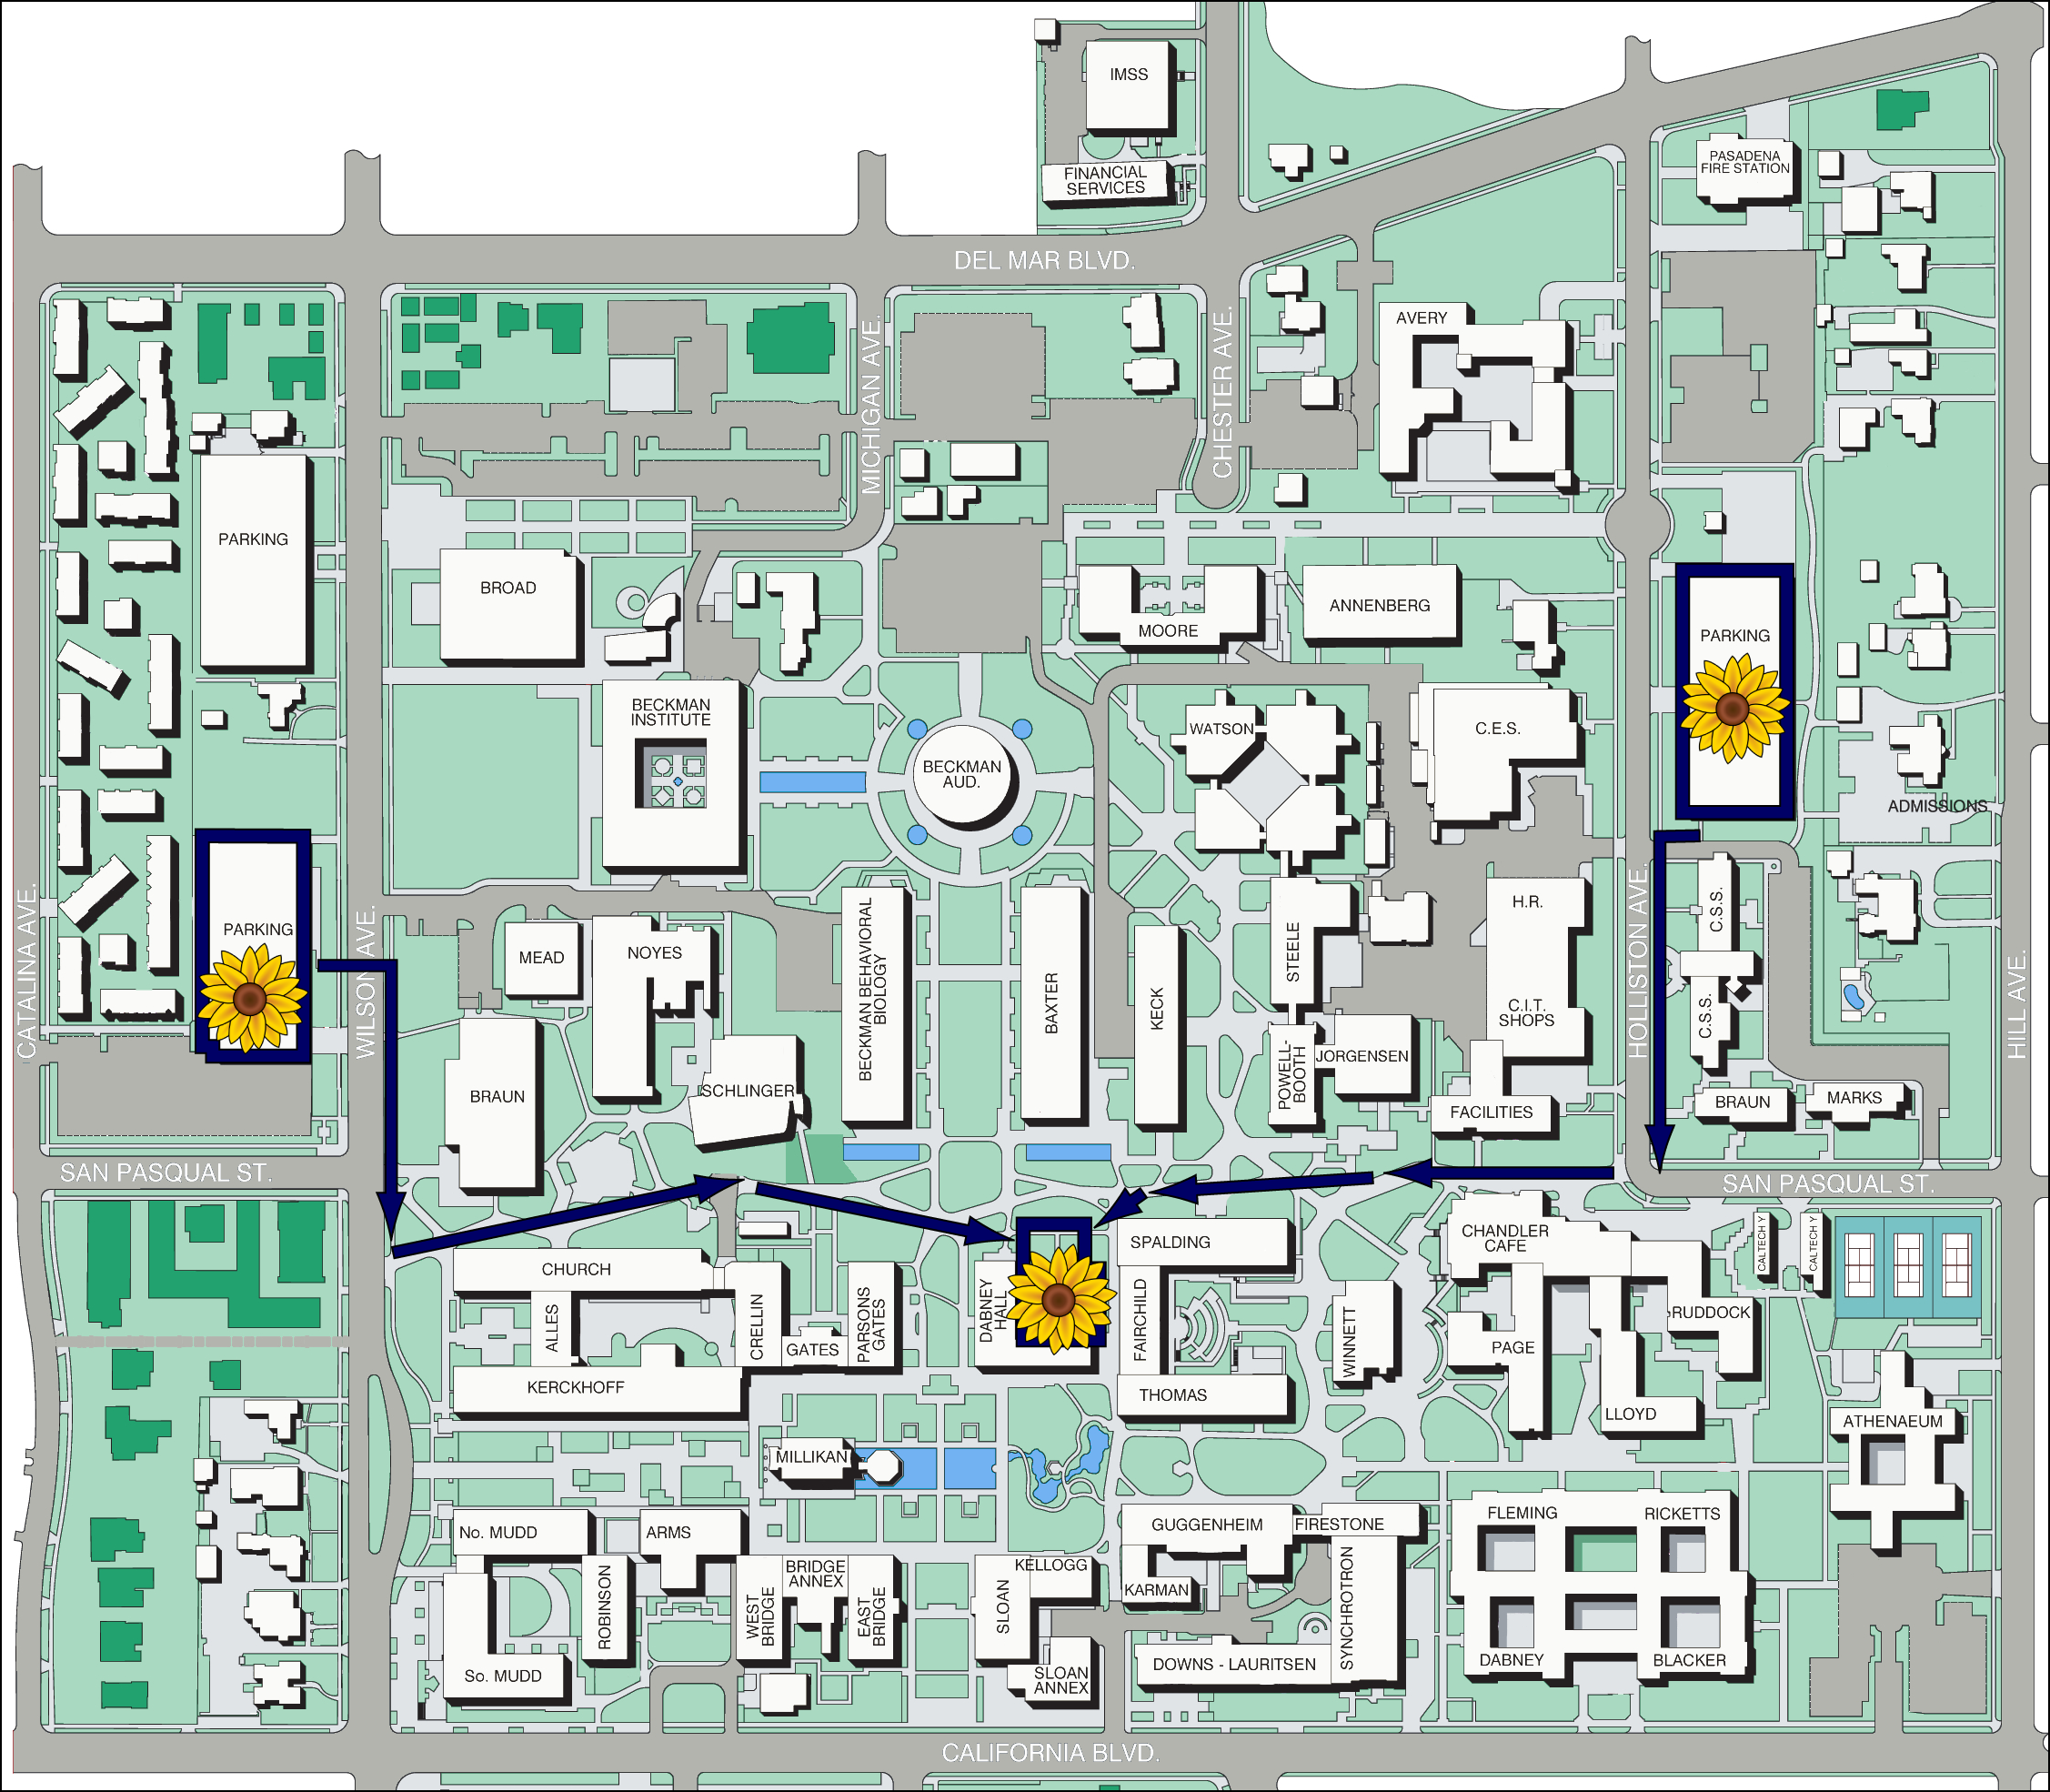 Cody and Suvi's Wedding: Maps and Directions Caltech Map on